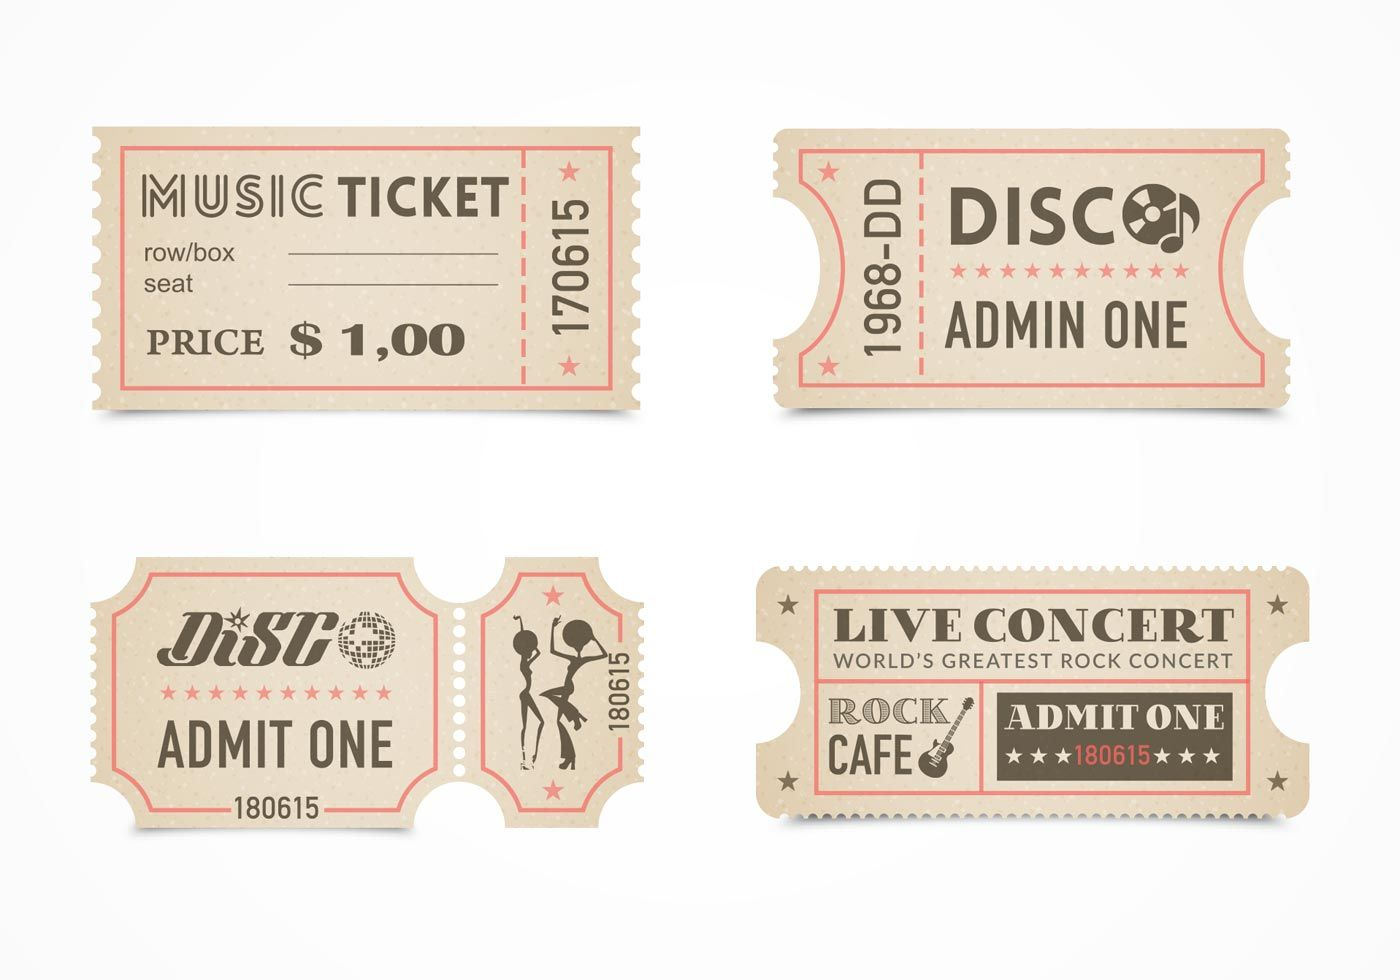 Free Retro Concert Ticket Stub Vector Set Ticket Design Ticket Template Free Ticket Template Template for tickets with stubs